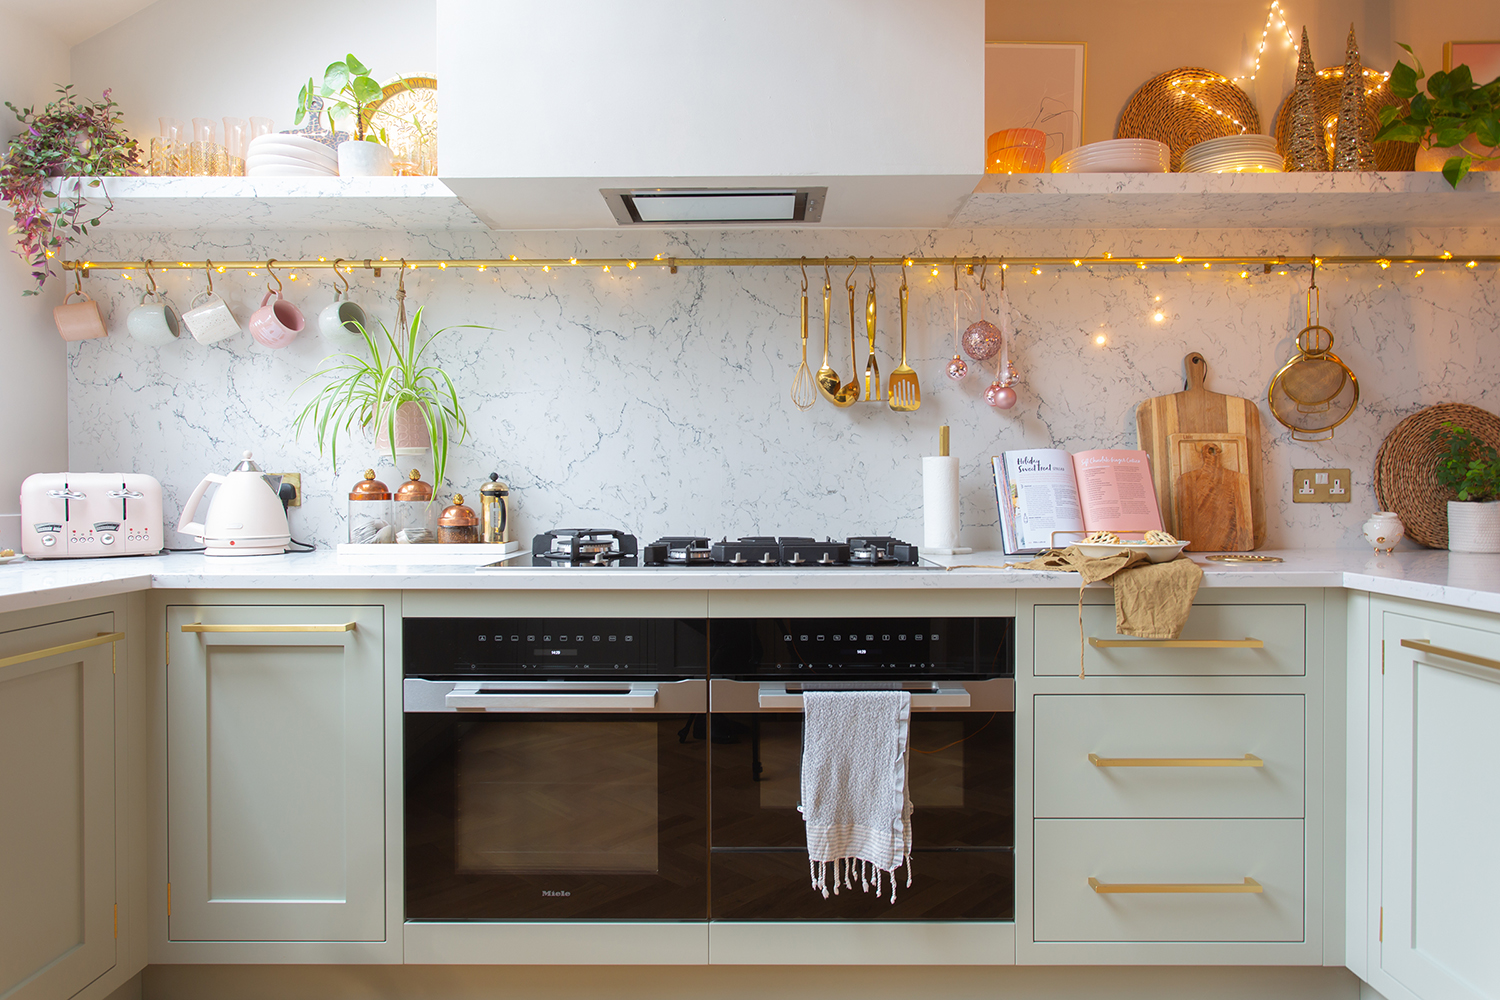 John Lewis of Hungerford Swoon Worthy kitchen Christmas